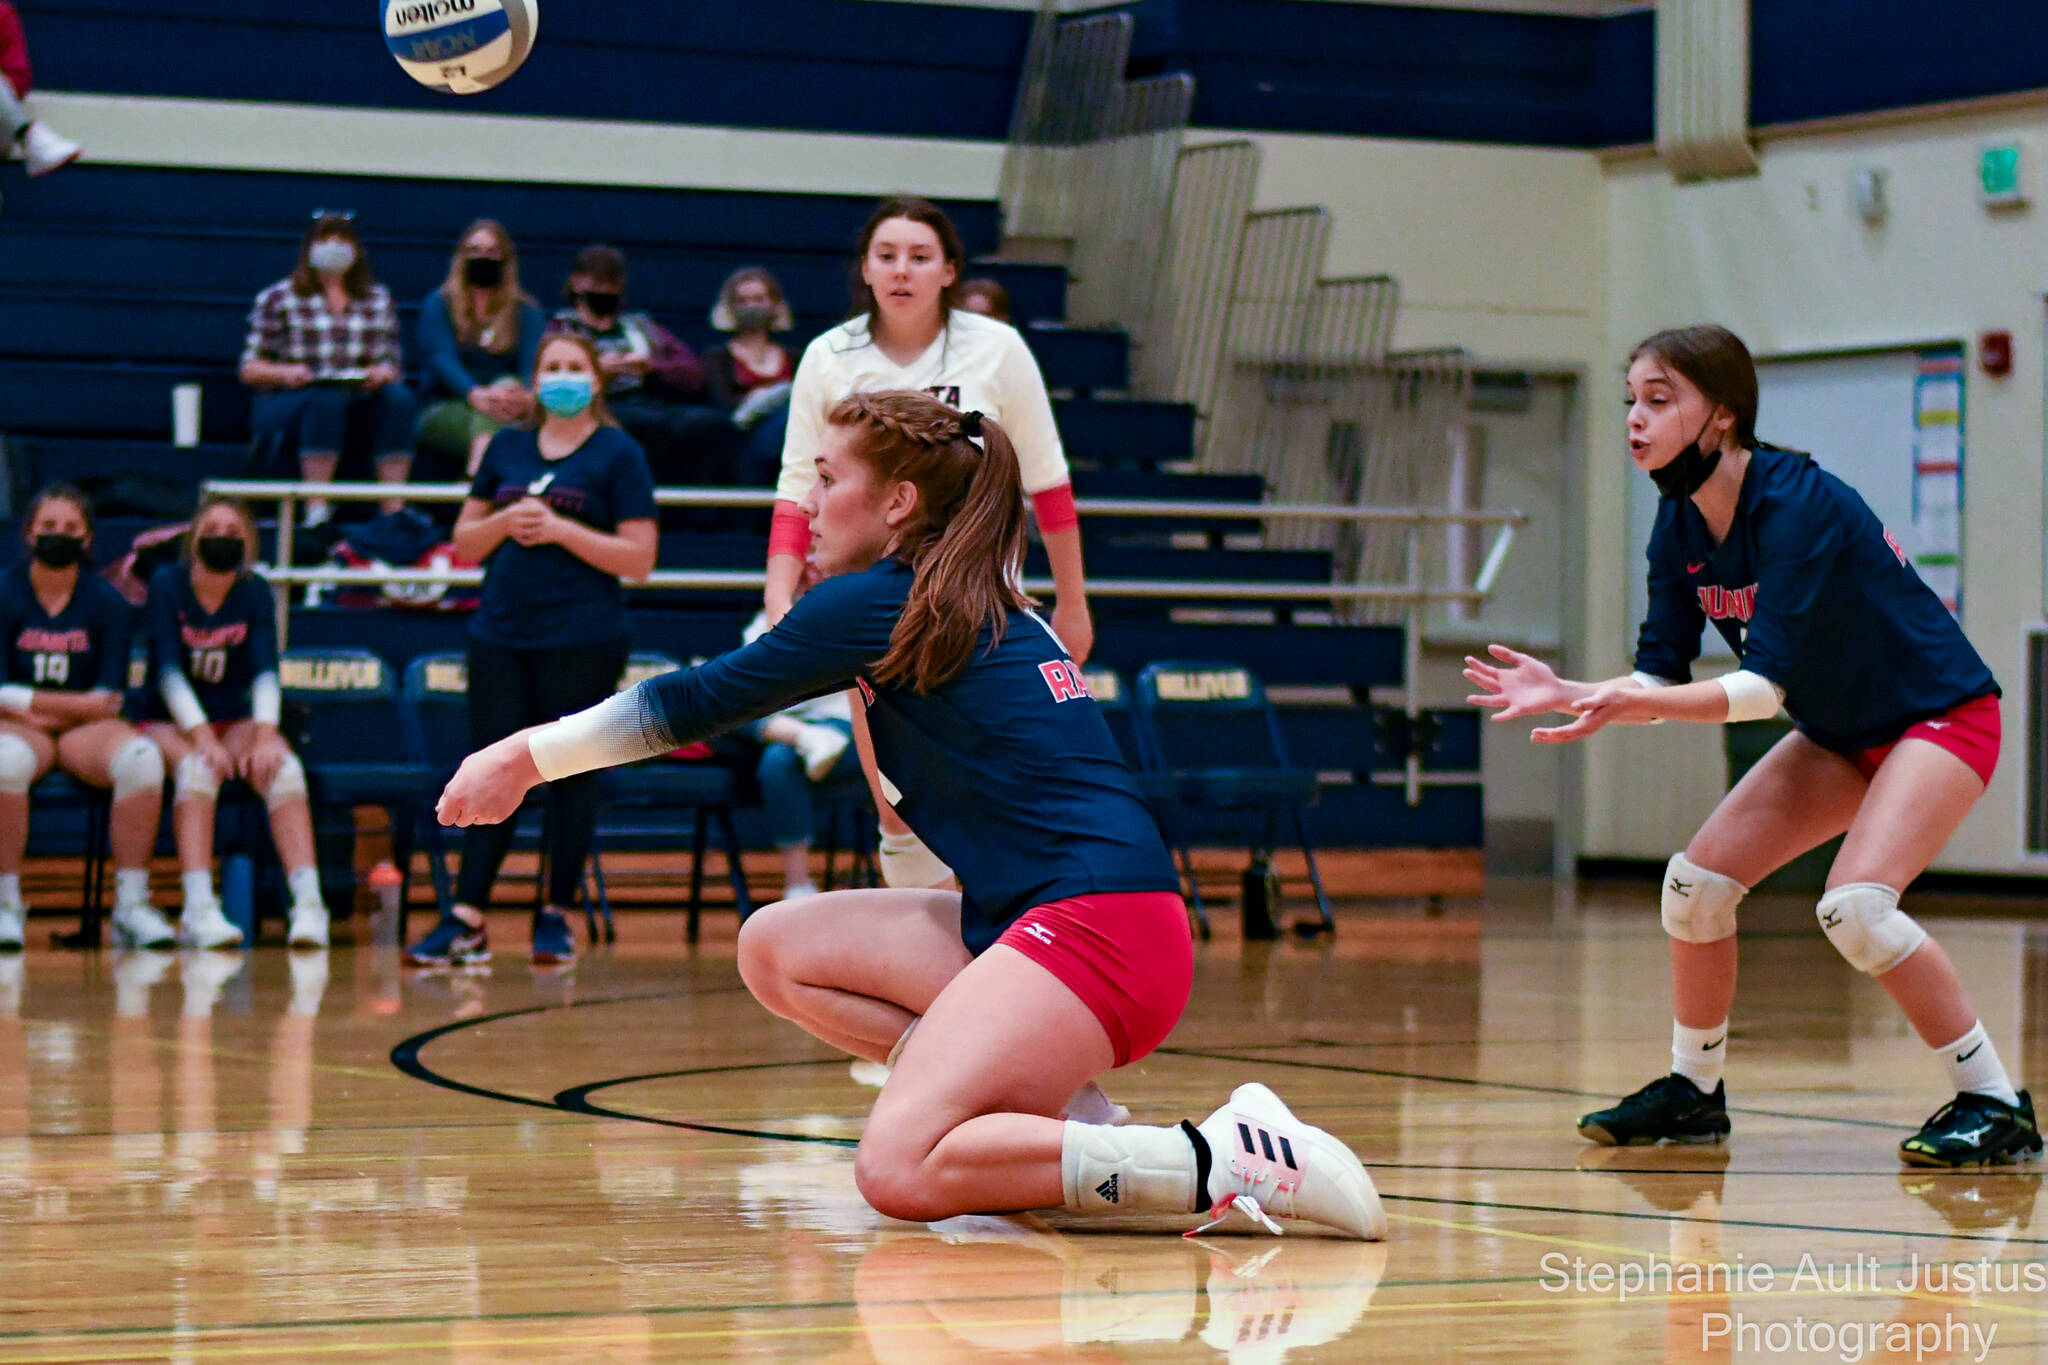 Juanita's Ashley Schroeder notches a dig during her squad's 3-0 volleyball loss to Bellevue on Sept. 20. Photo courtesy of Stephanie Ault Justus